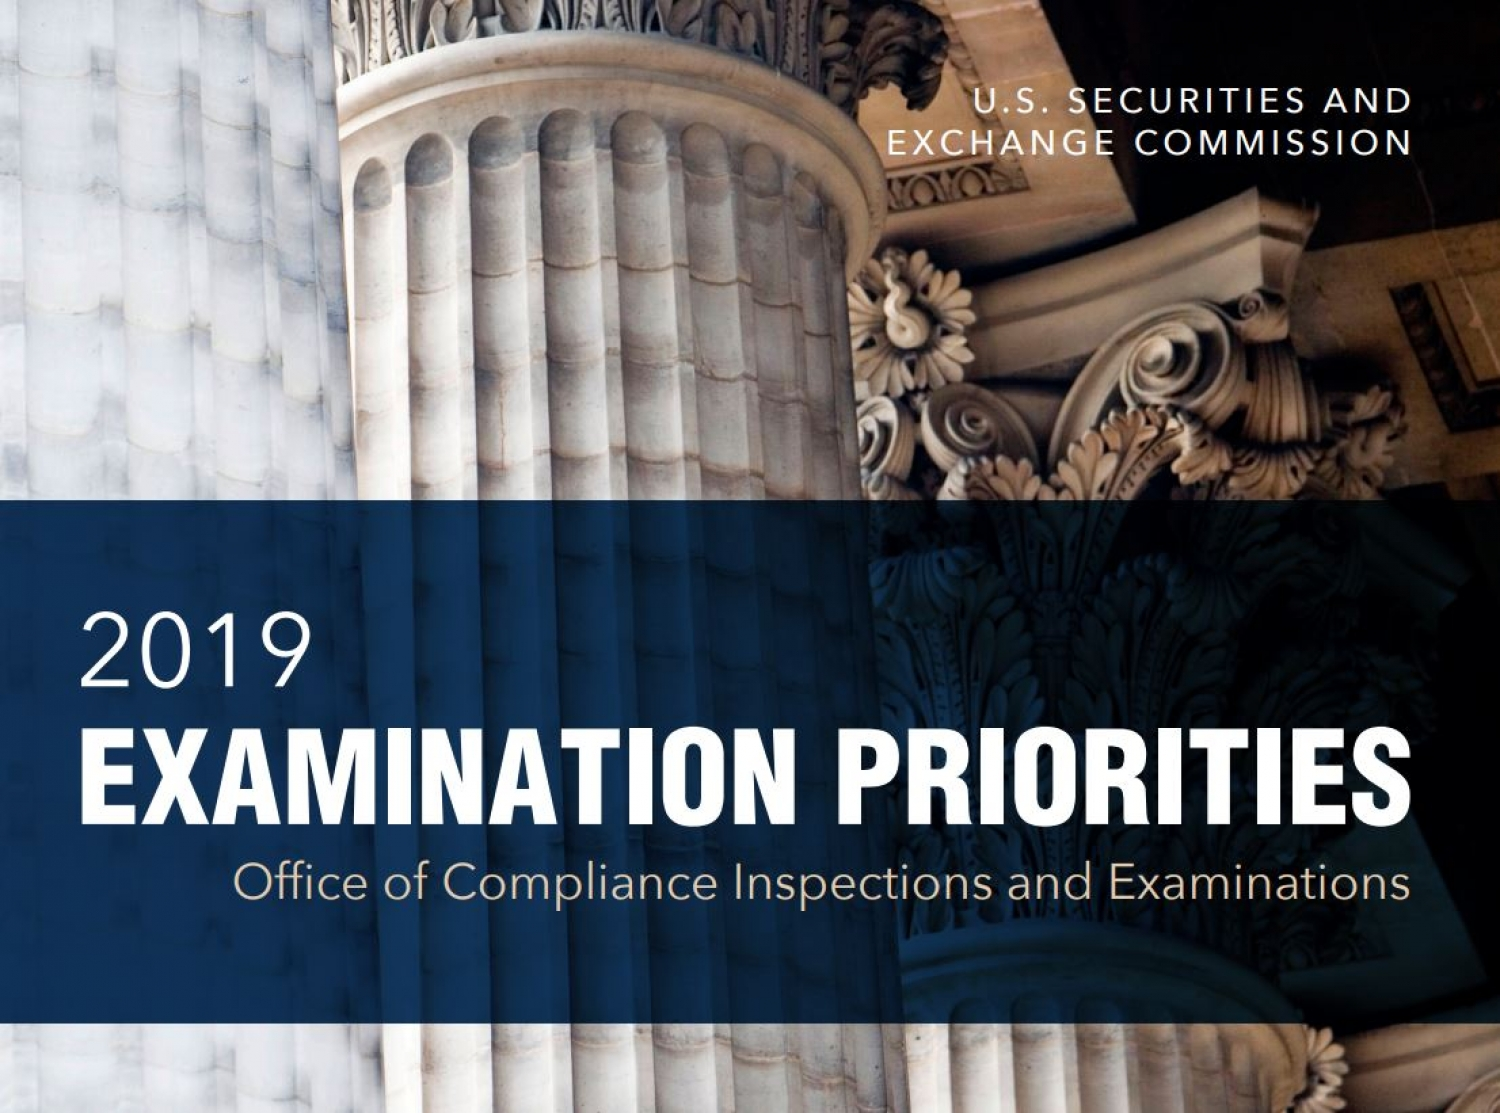 2019 EXAMINATION PRIORITIES: OFFICE OF COMPLIANCE INSPECTIONS AND EXAMINATIONS